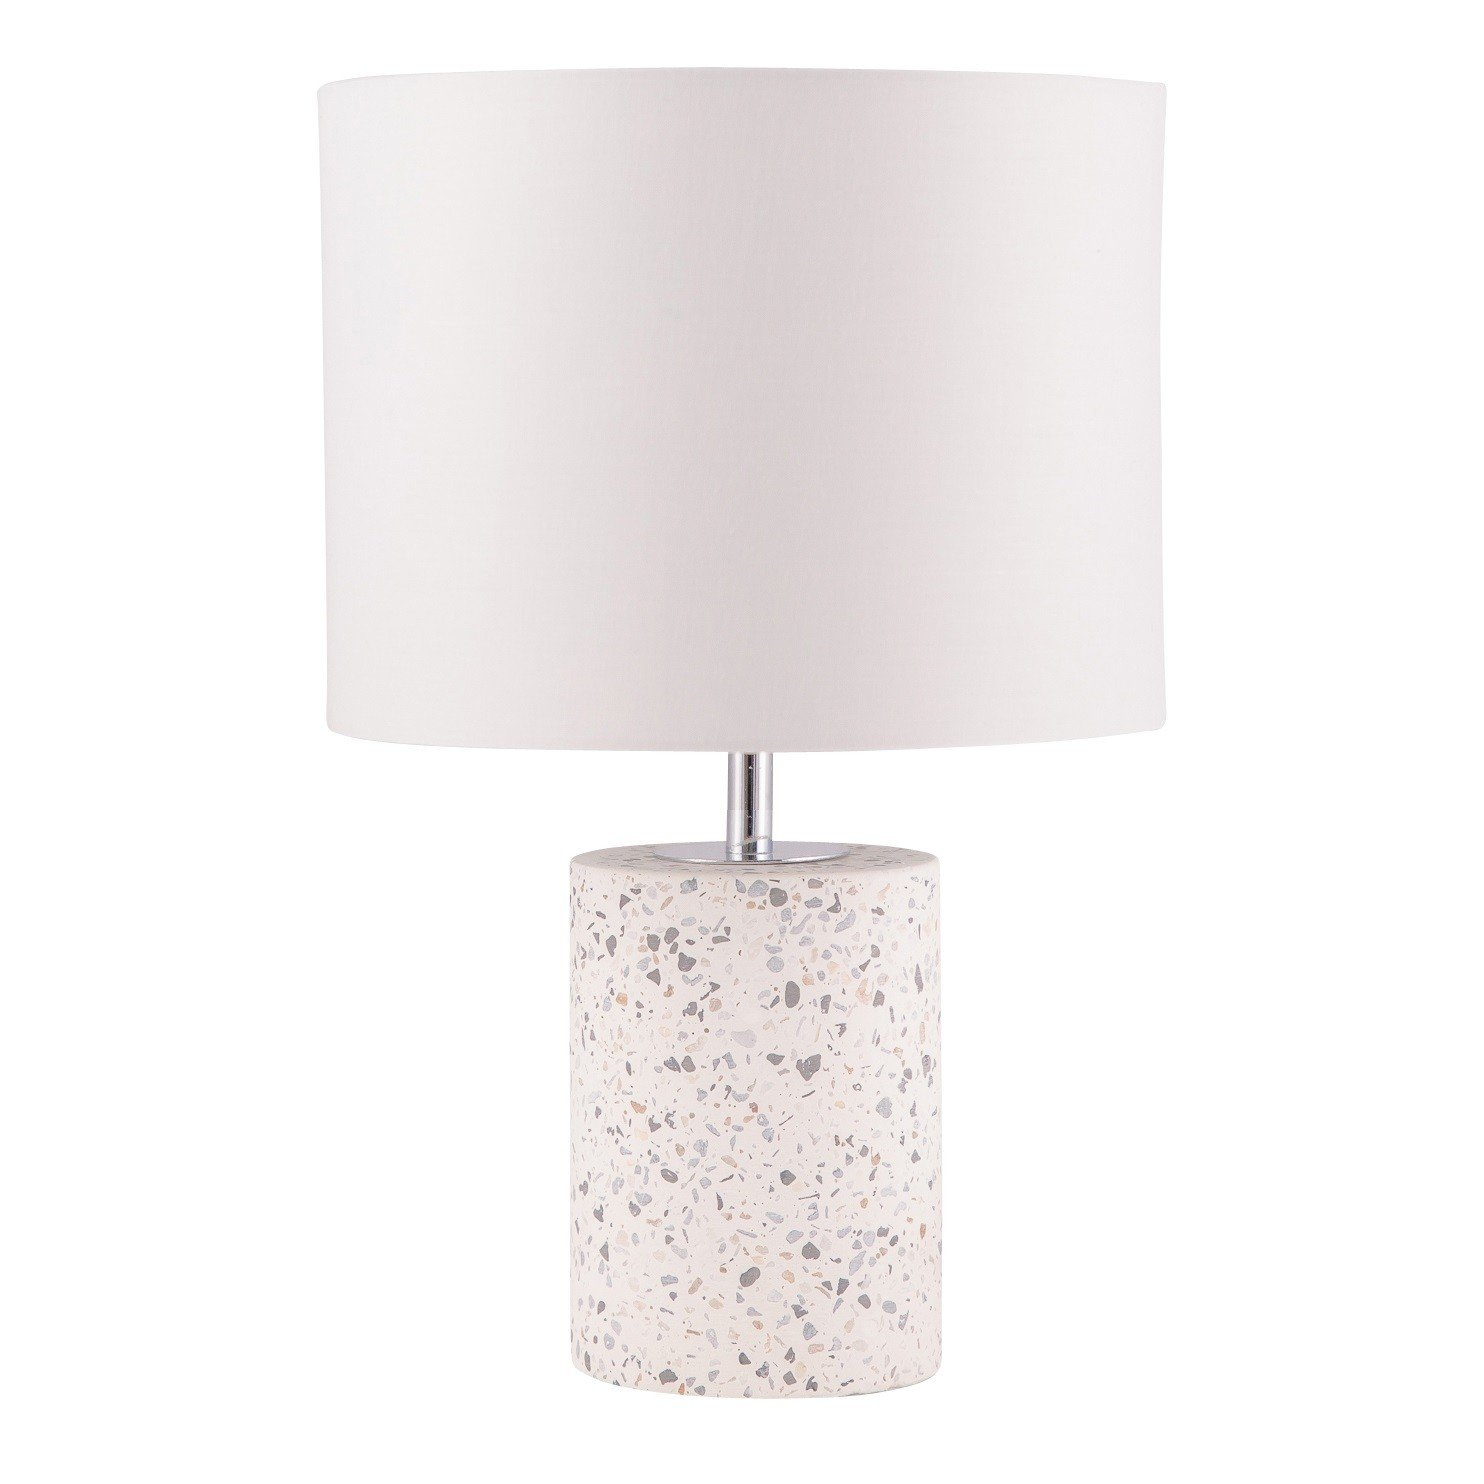 White Terrazzo Cylinder Table Lamp